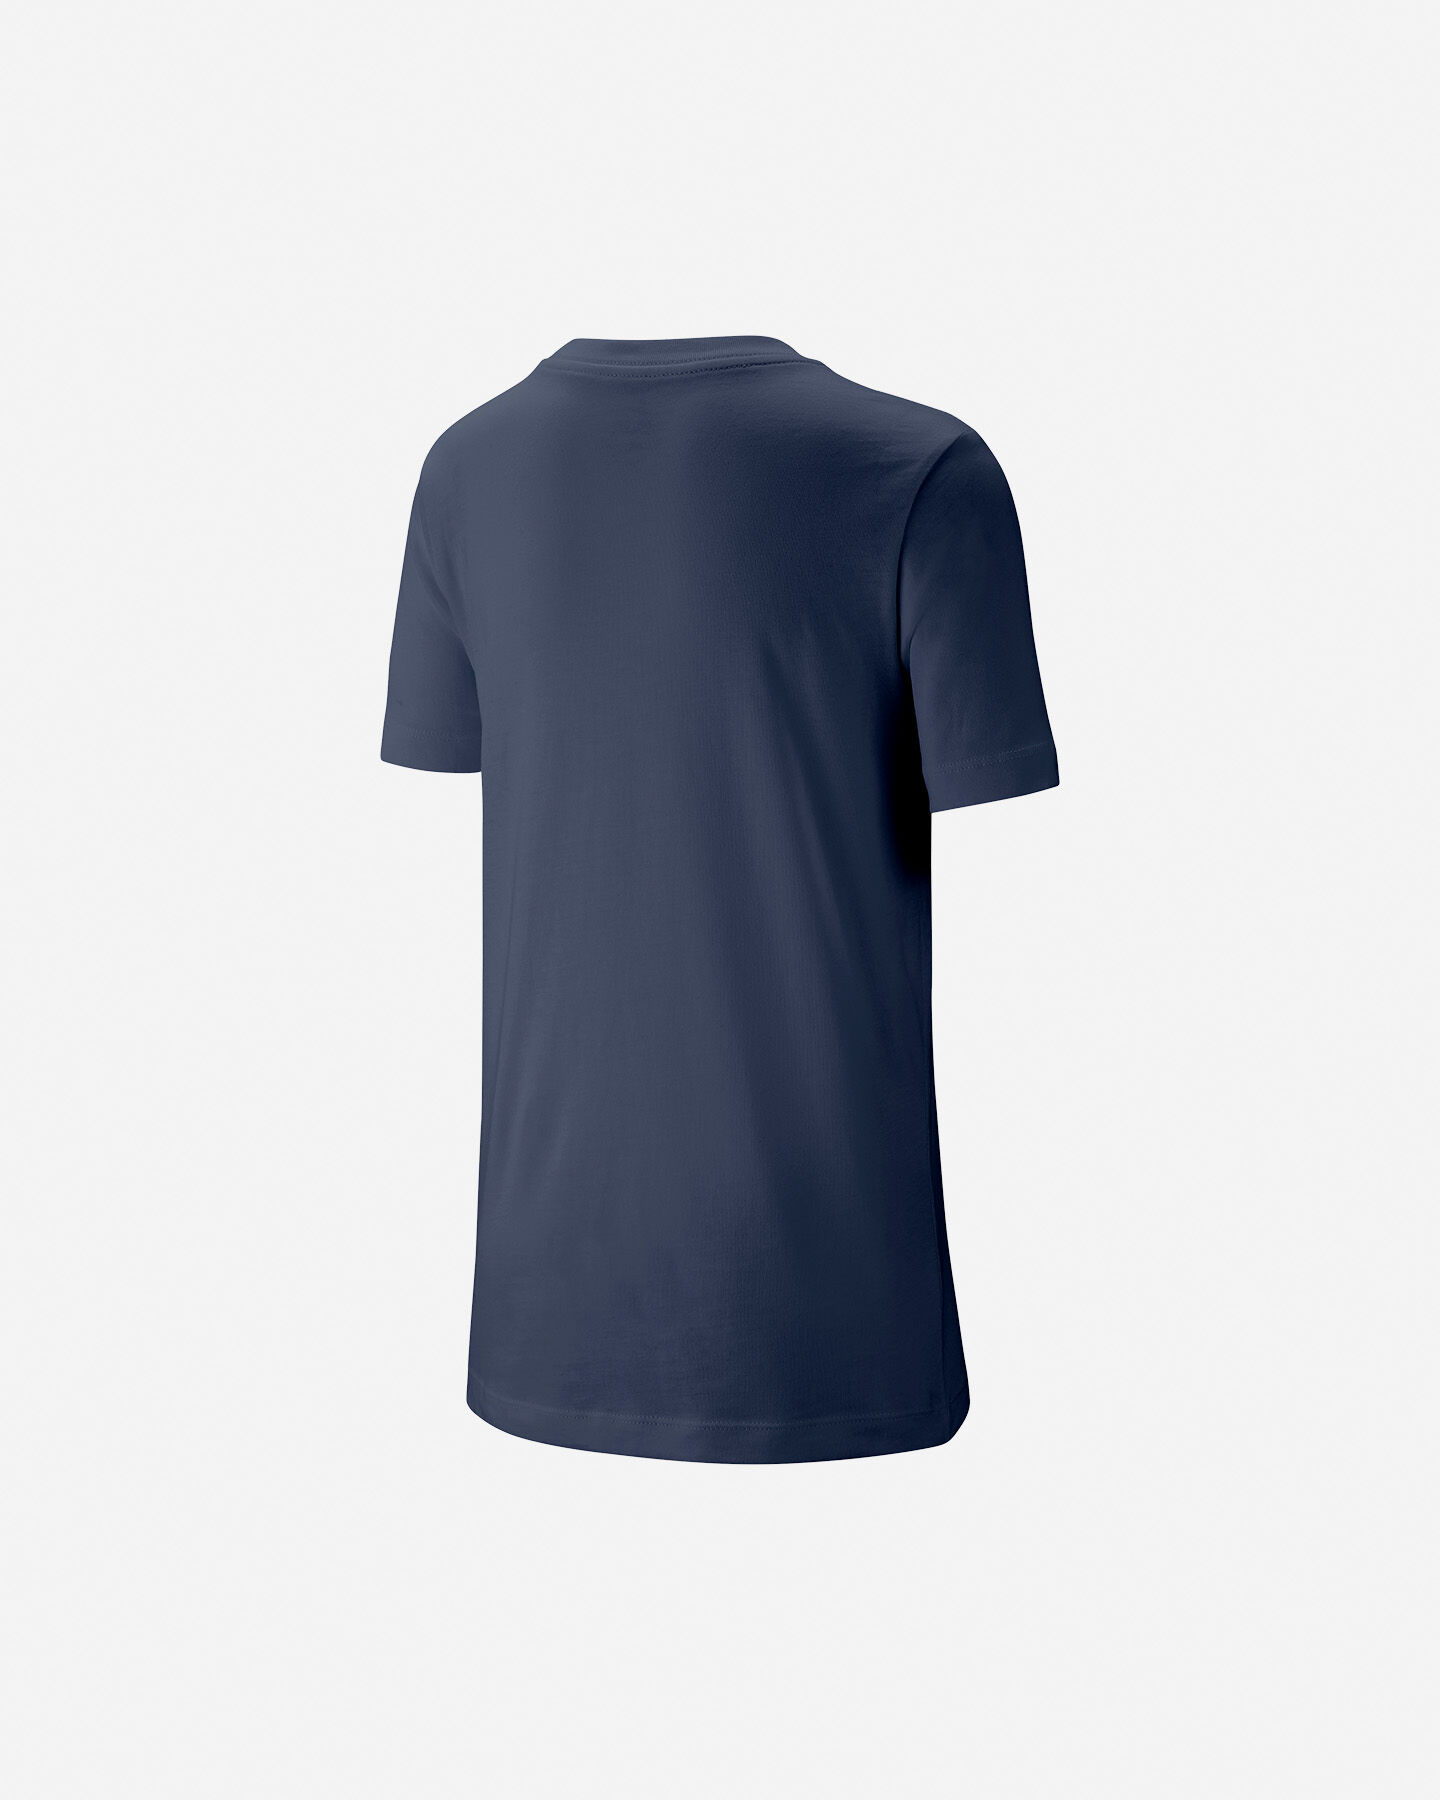 T-Shirt NIKE BIG LOGO JR S5162702 scatto 1